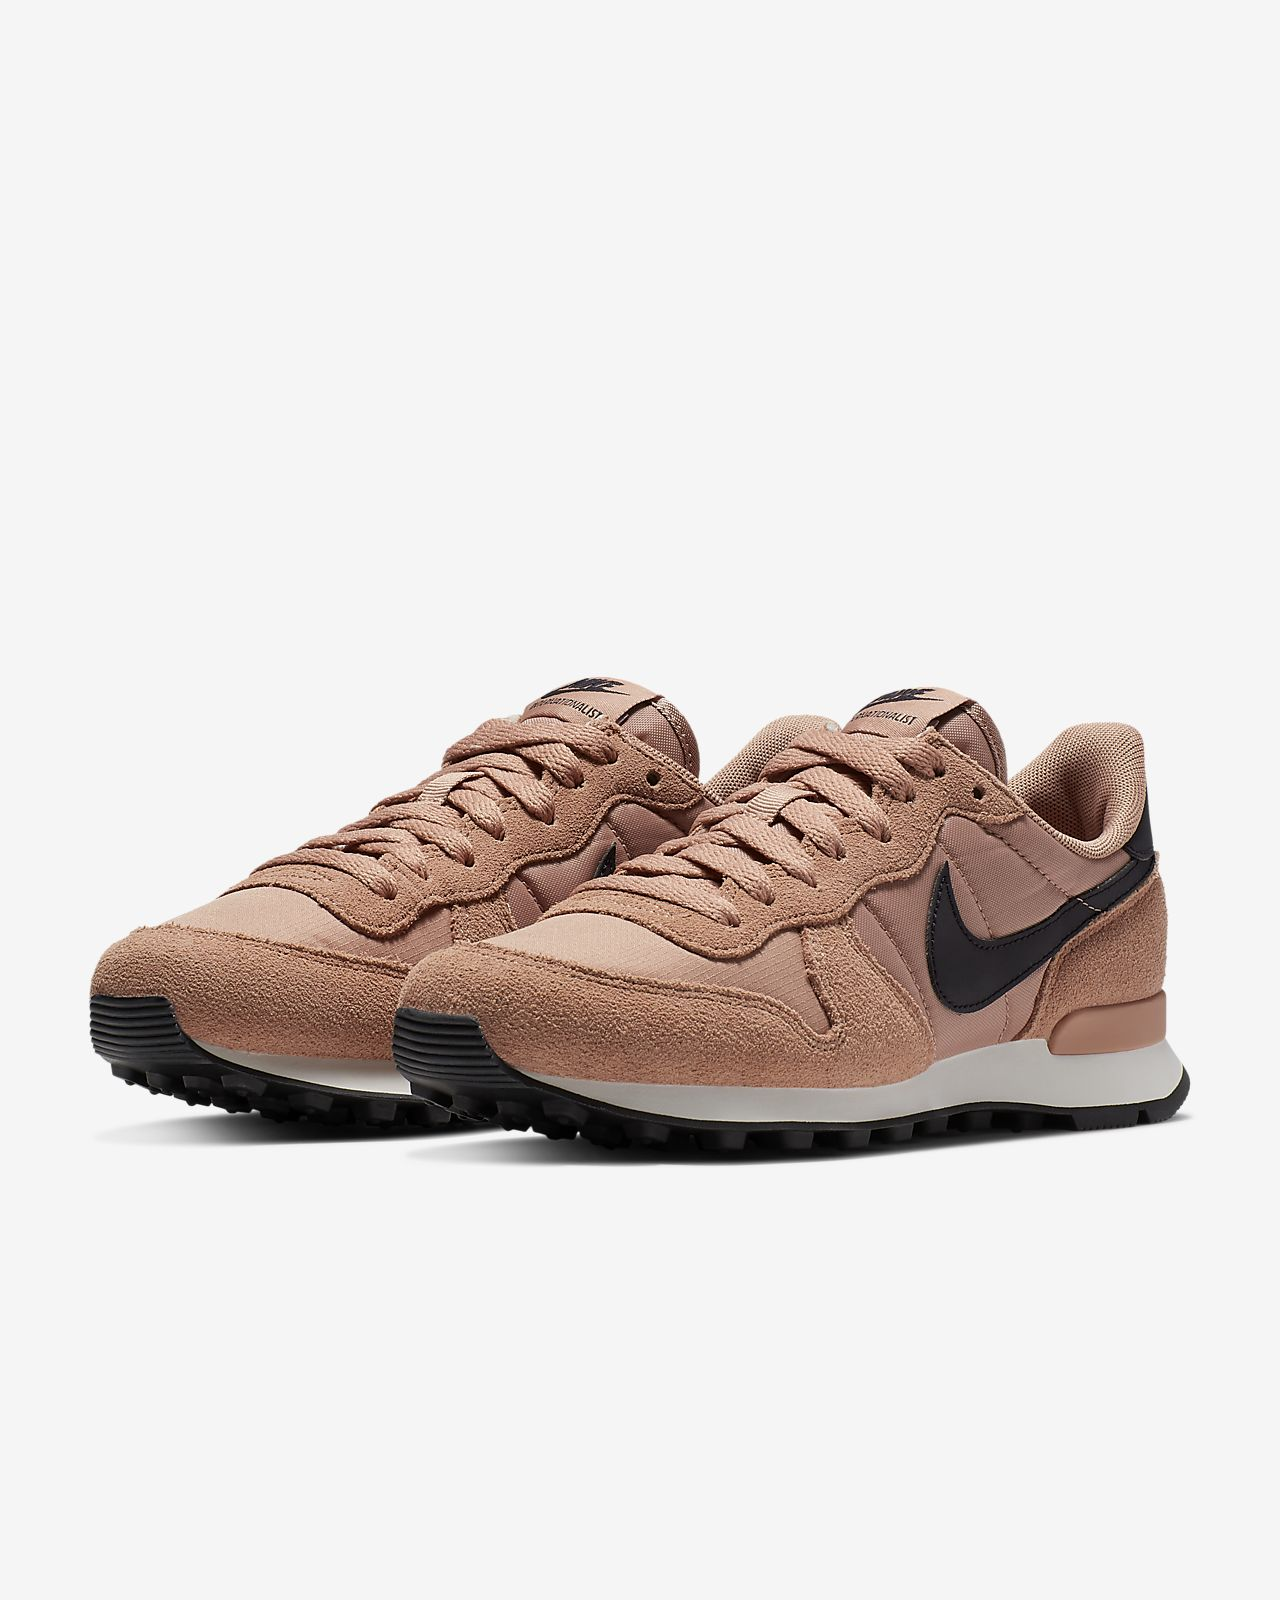 best website 6edd0 603e2 Low Resolution Nike Internationalist Women s Shoe Nike Internationalist  Women s Shoe